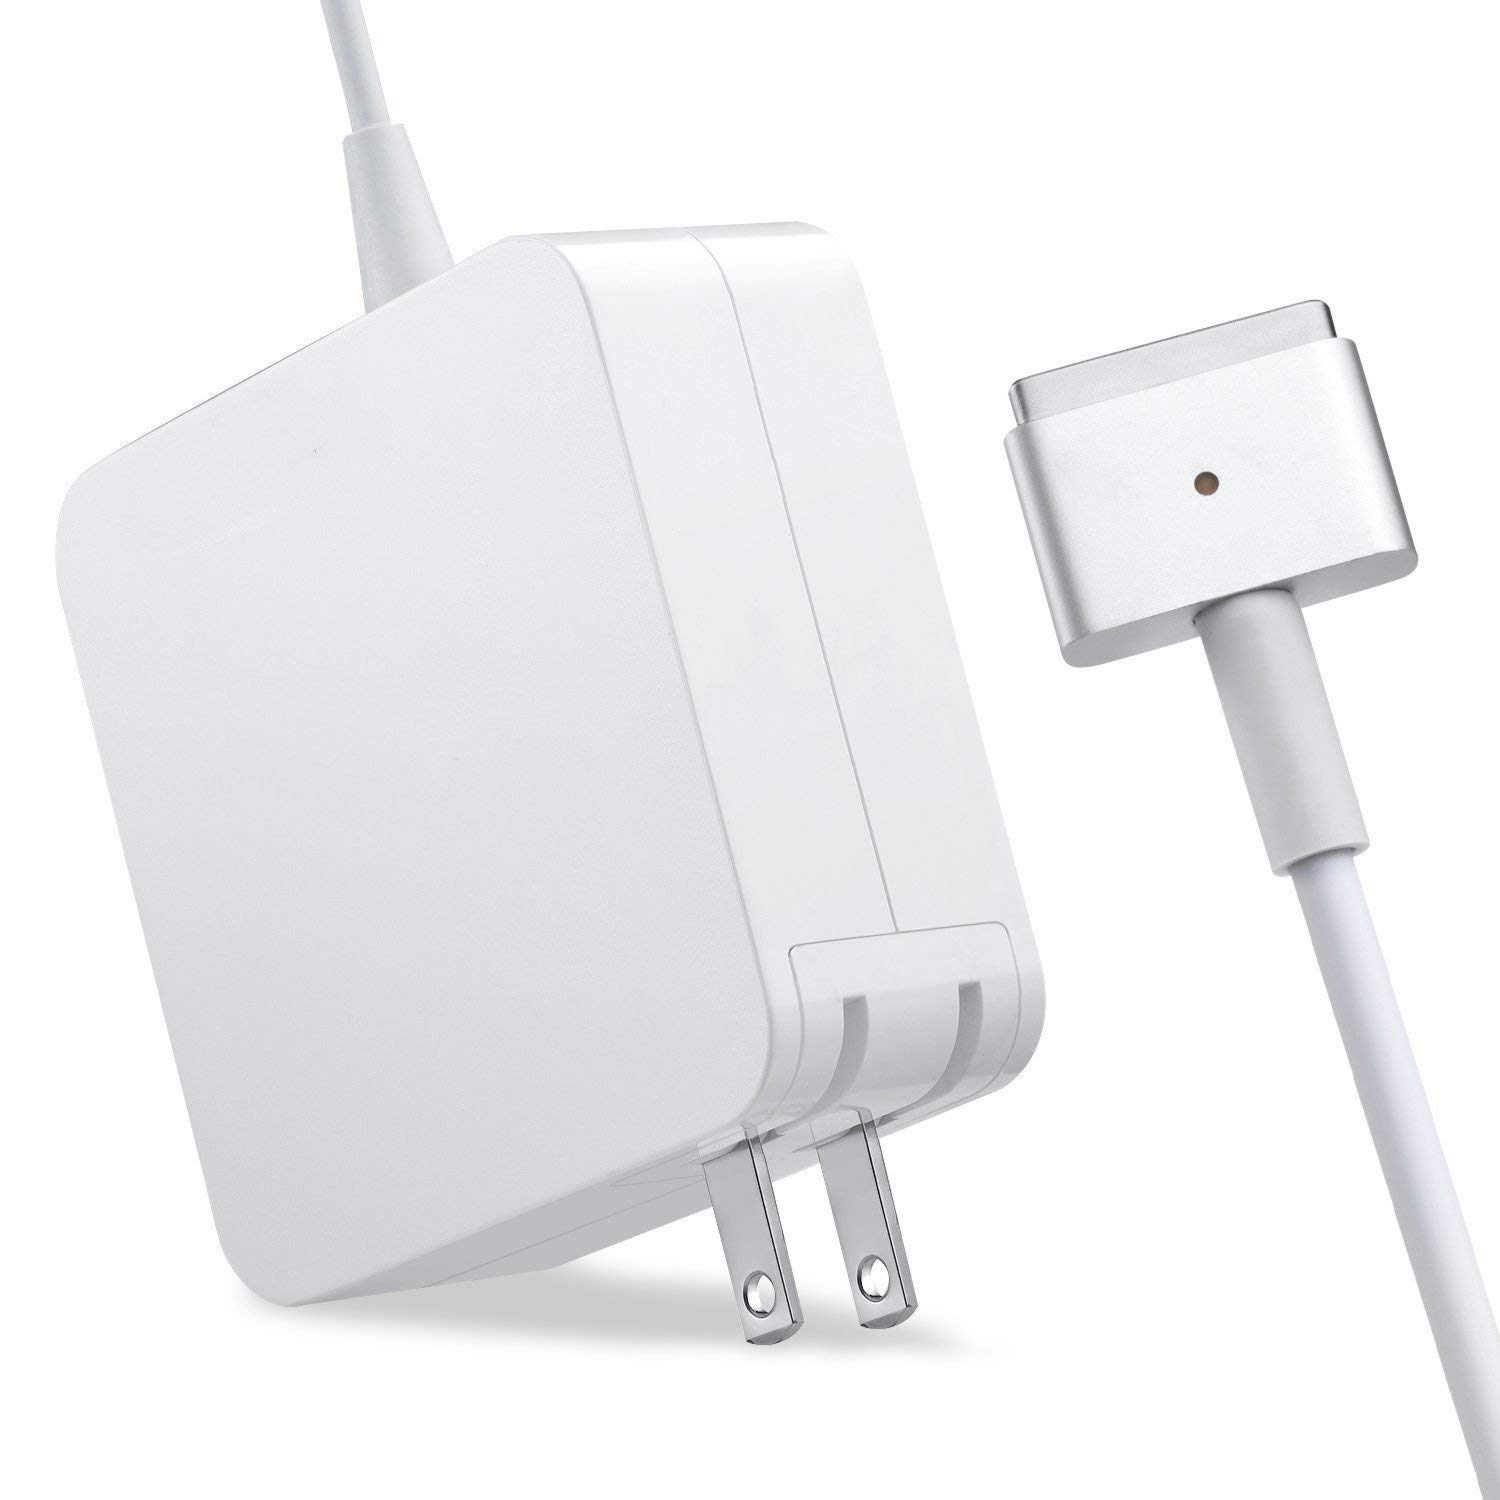 Luv America 60W MagSafe 2 Replacement 60W Mac Power Cable Adapter Charger. Compatible with MacBook Air and MacBook Pro Laptops with ''T-tip'' Style Cord Connector. by Luv America